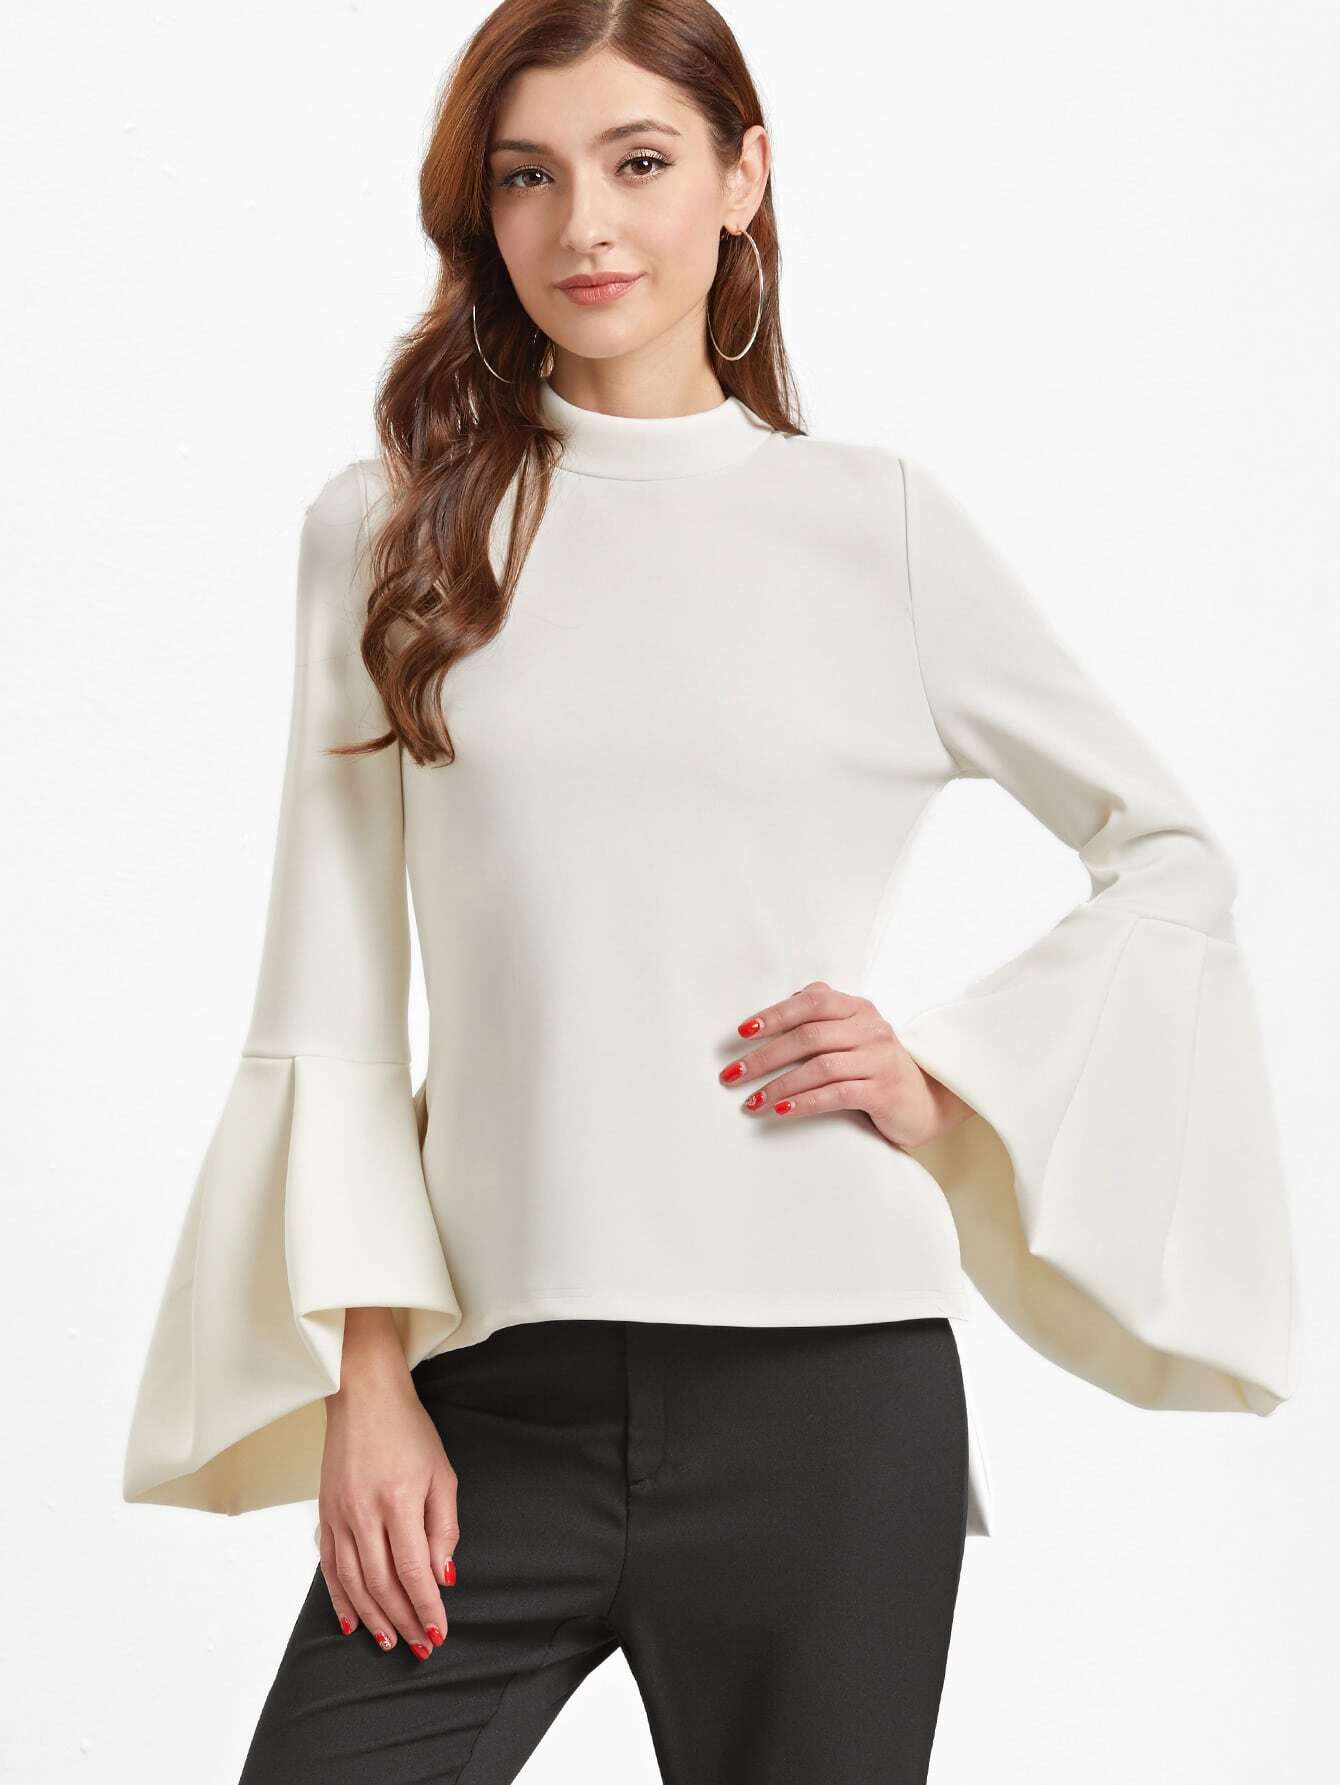 White Pleated Bell Sleeve And Back High Low TopWhite Pleated Bell Sleeve And Back High Low Top<br><br>color: White<br>size: L,M,S,XS